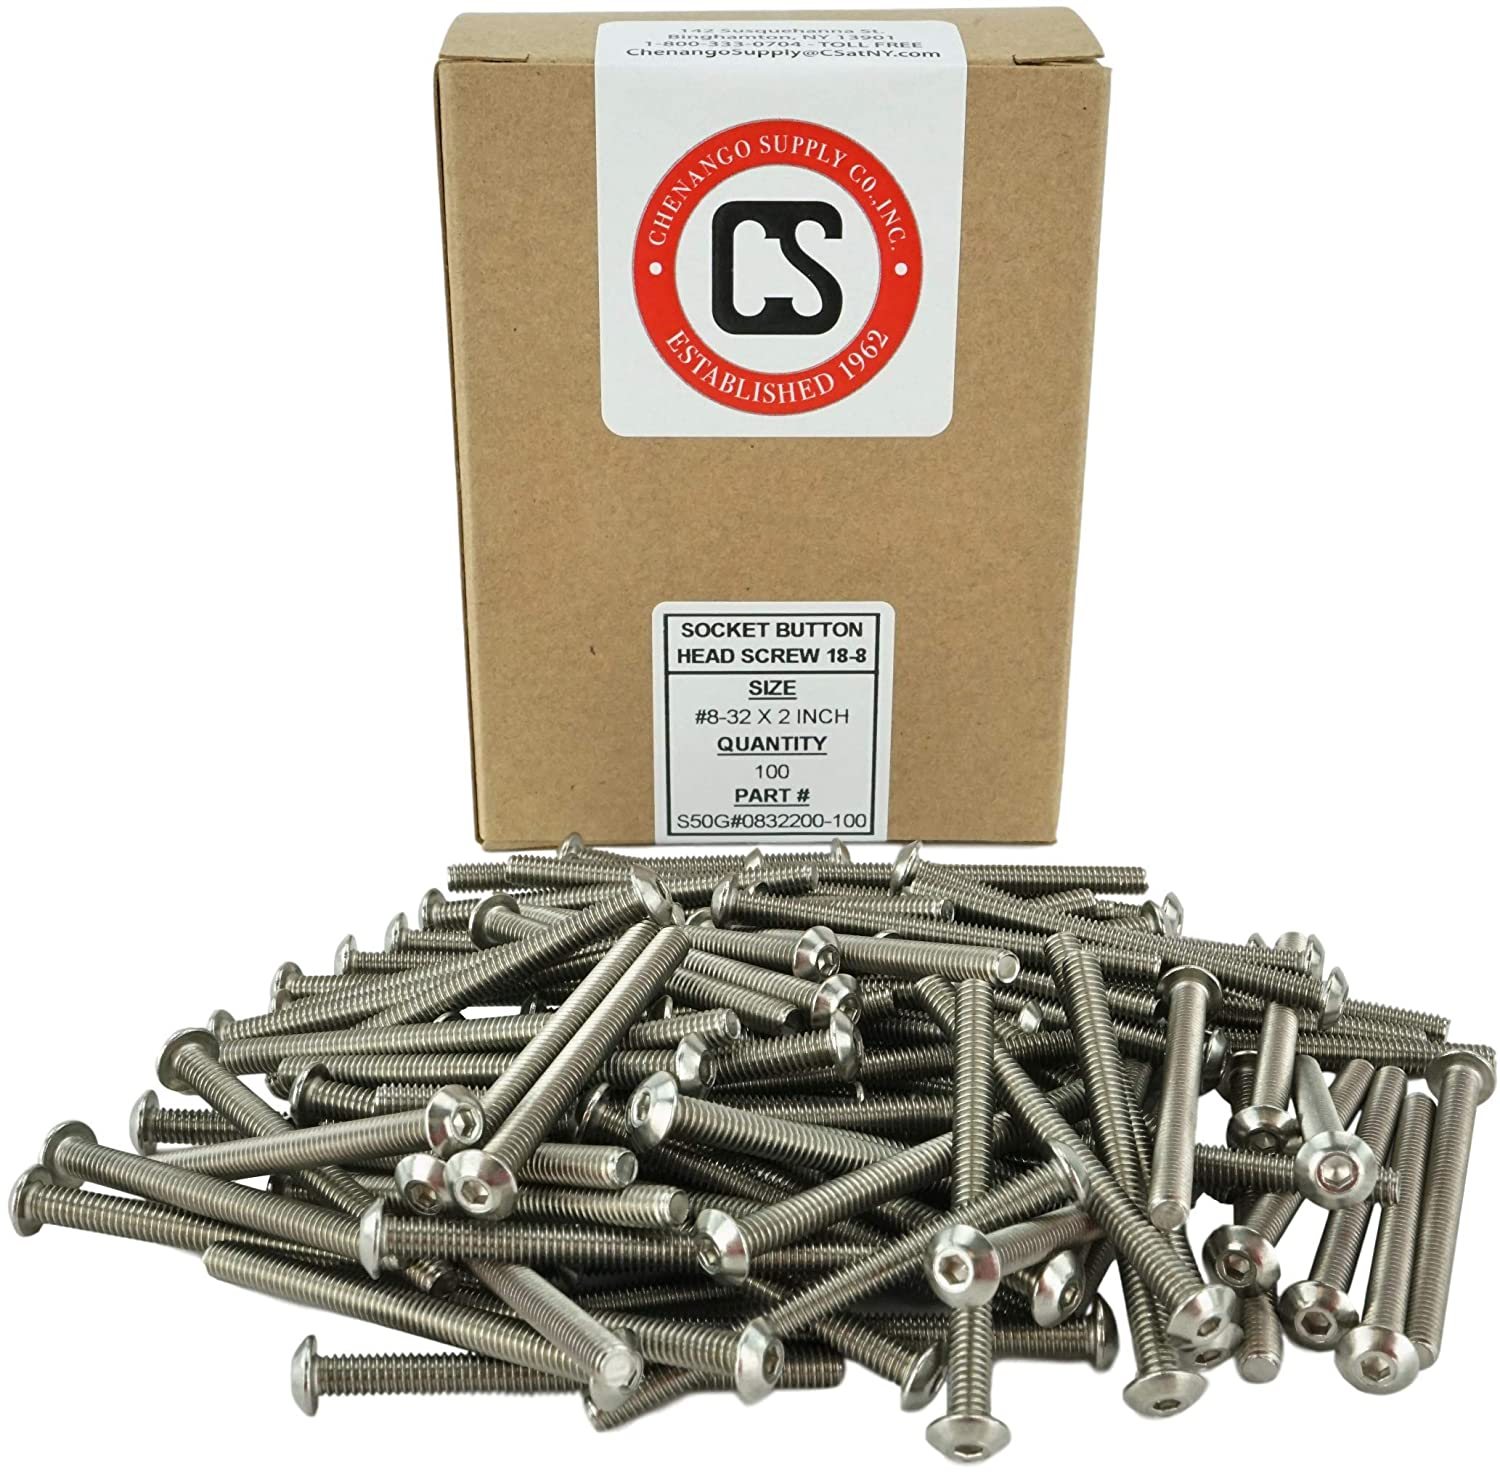 Hex Drive 8-32 x 1-1//4 Socket Button Head Cap Screws Stainless Steel 18-8 Stainless #8-32 x 1-1//4 Machine Thread Full Thread 1//2 to 2 Available